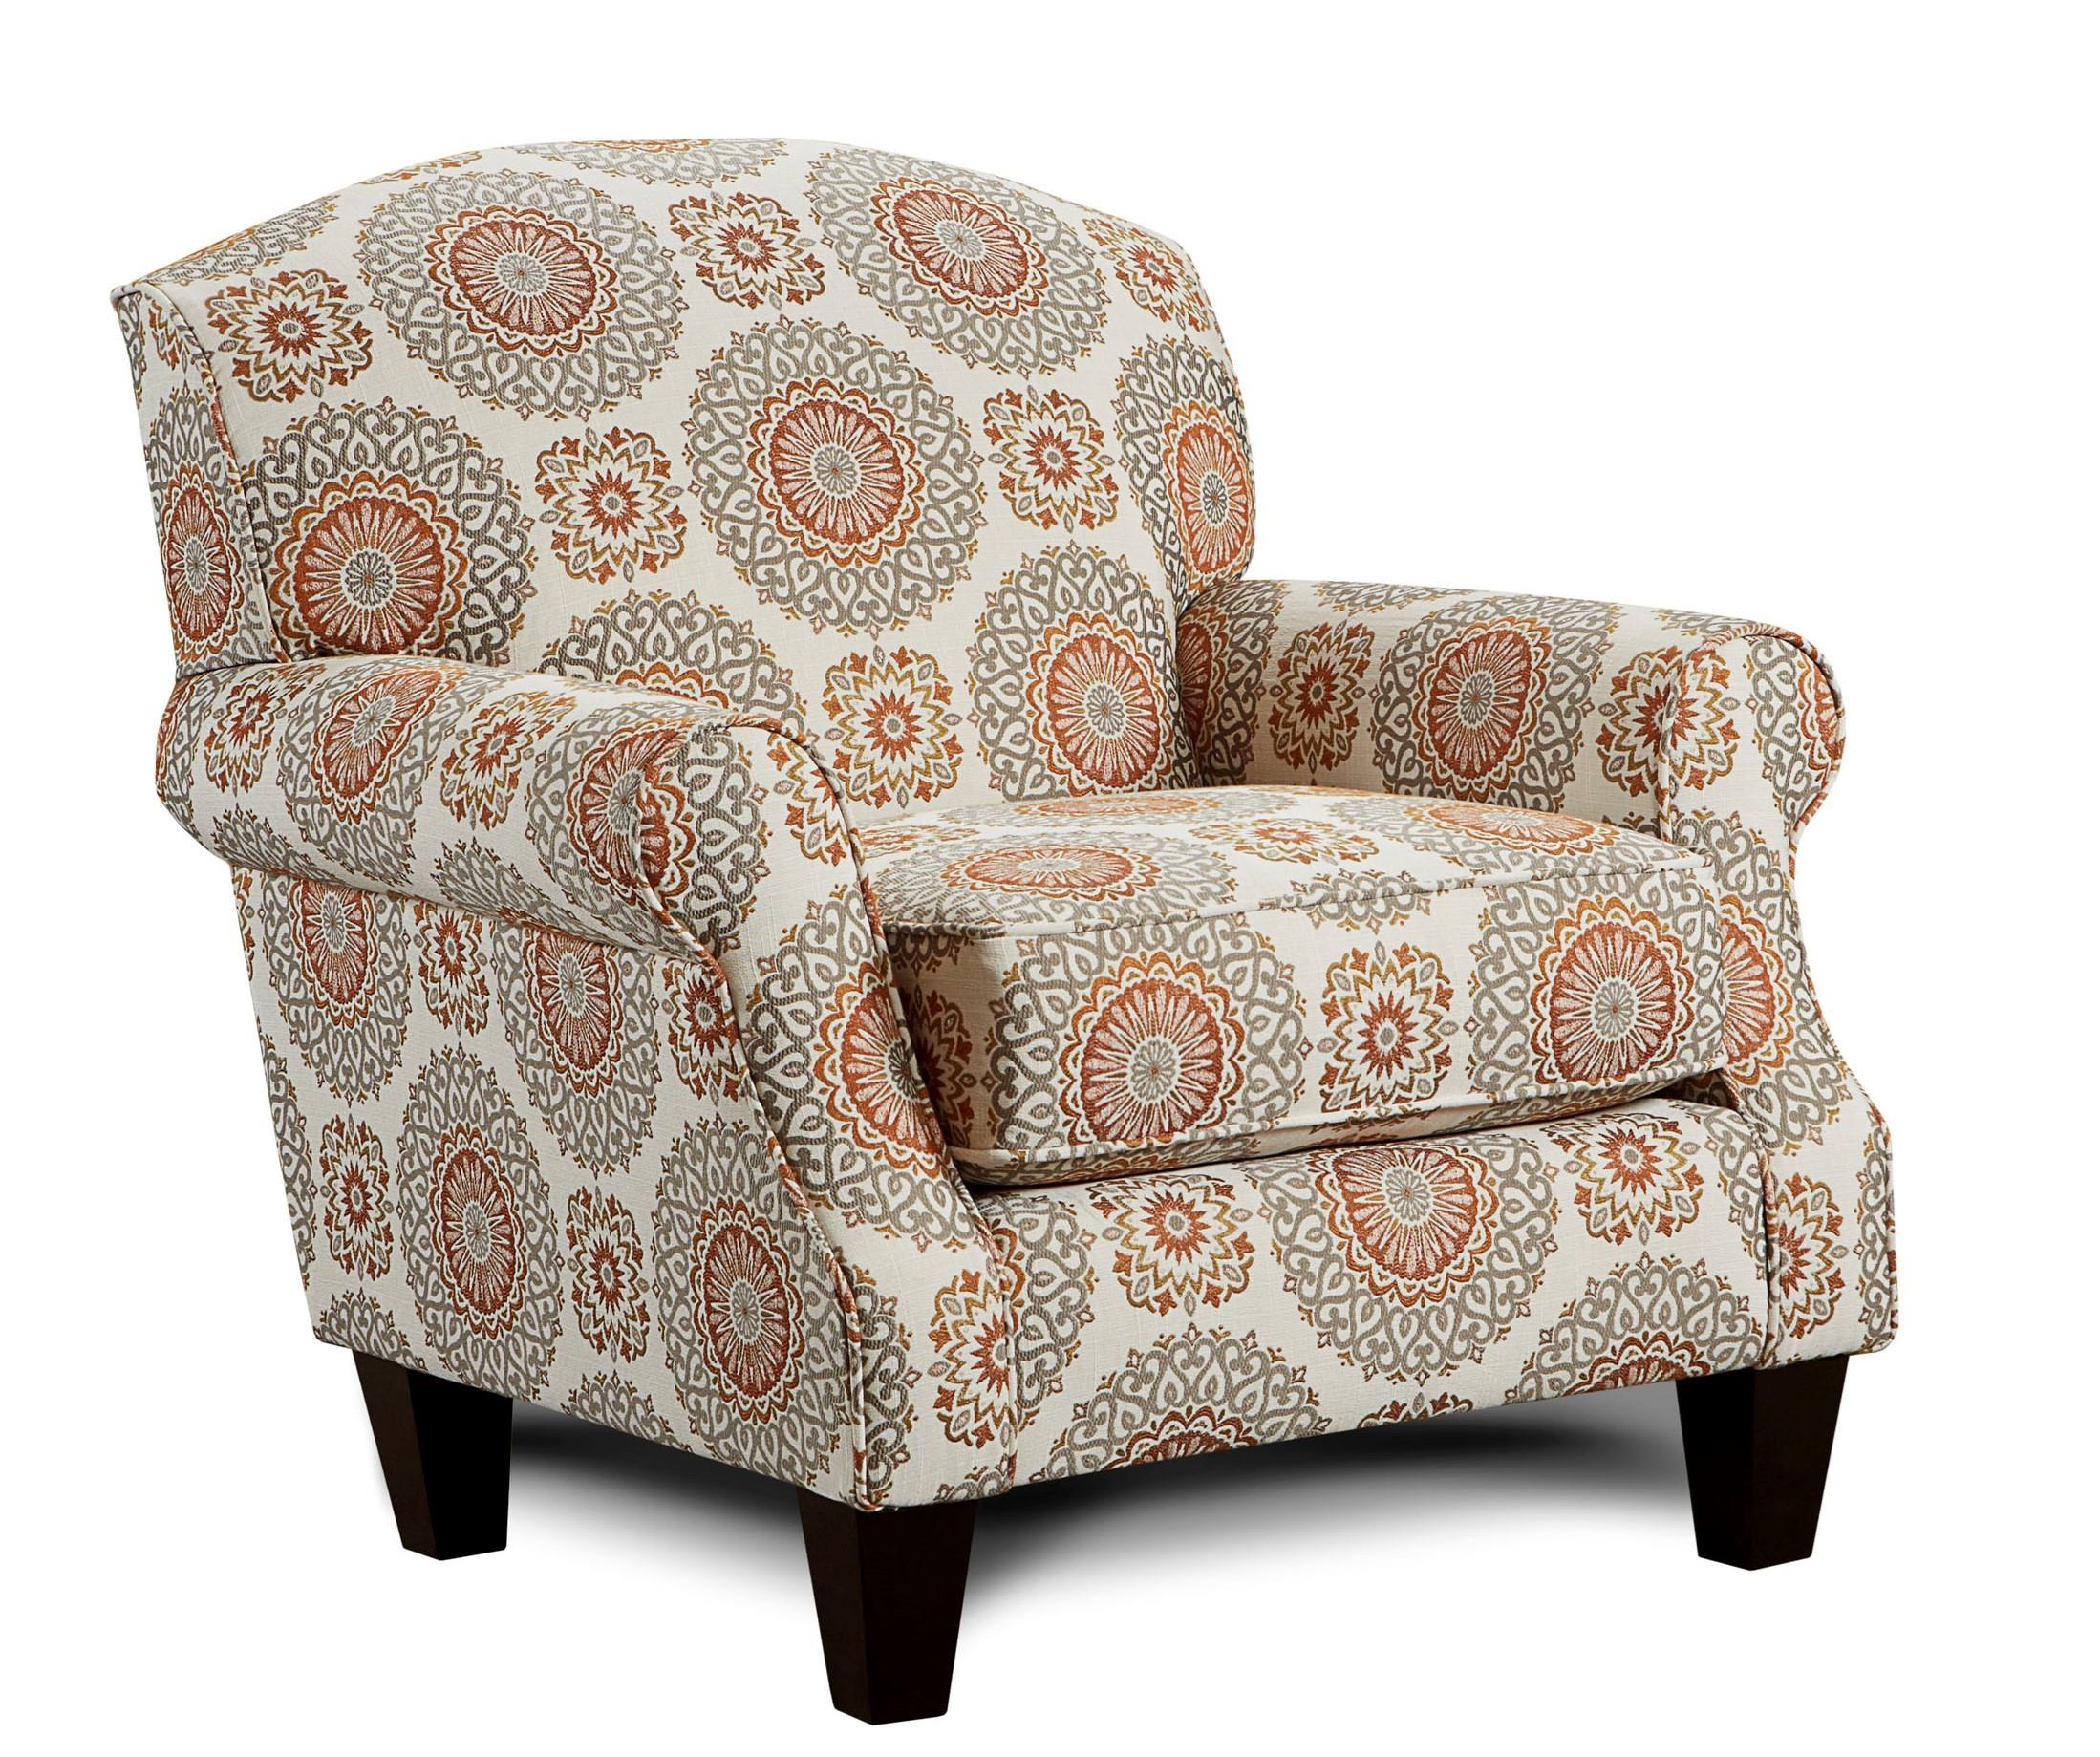 Fusion Furniture Turino Sisal Brianne Marmalade Accent Chair - Item Number: 532 BRIANNE-MARMALADE